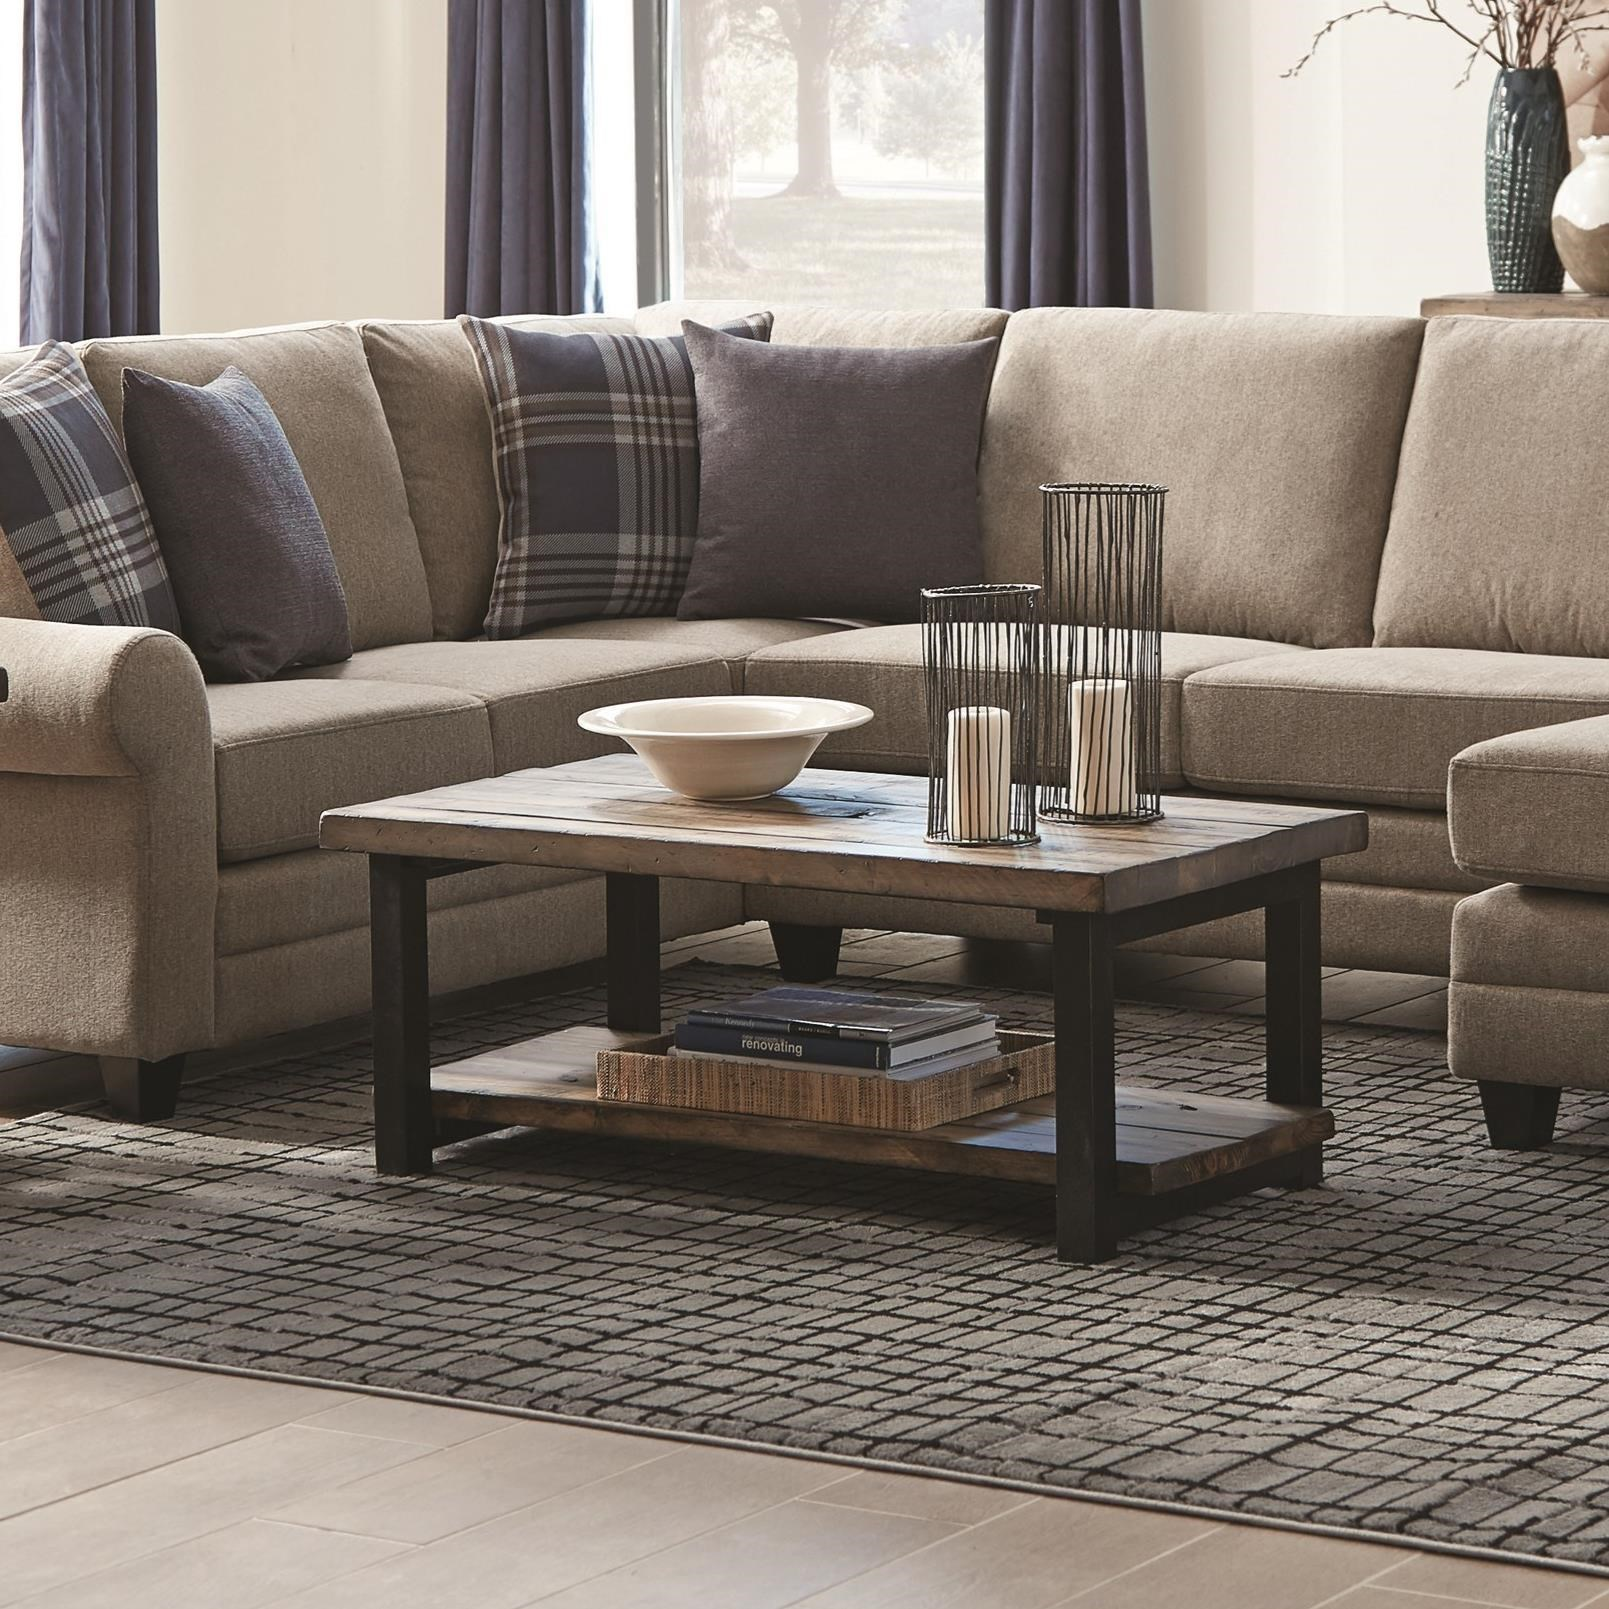 705678 rustic planked top coffee table